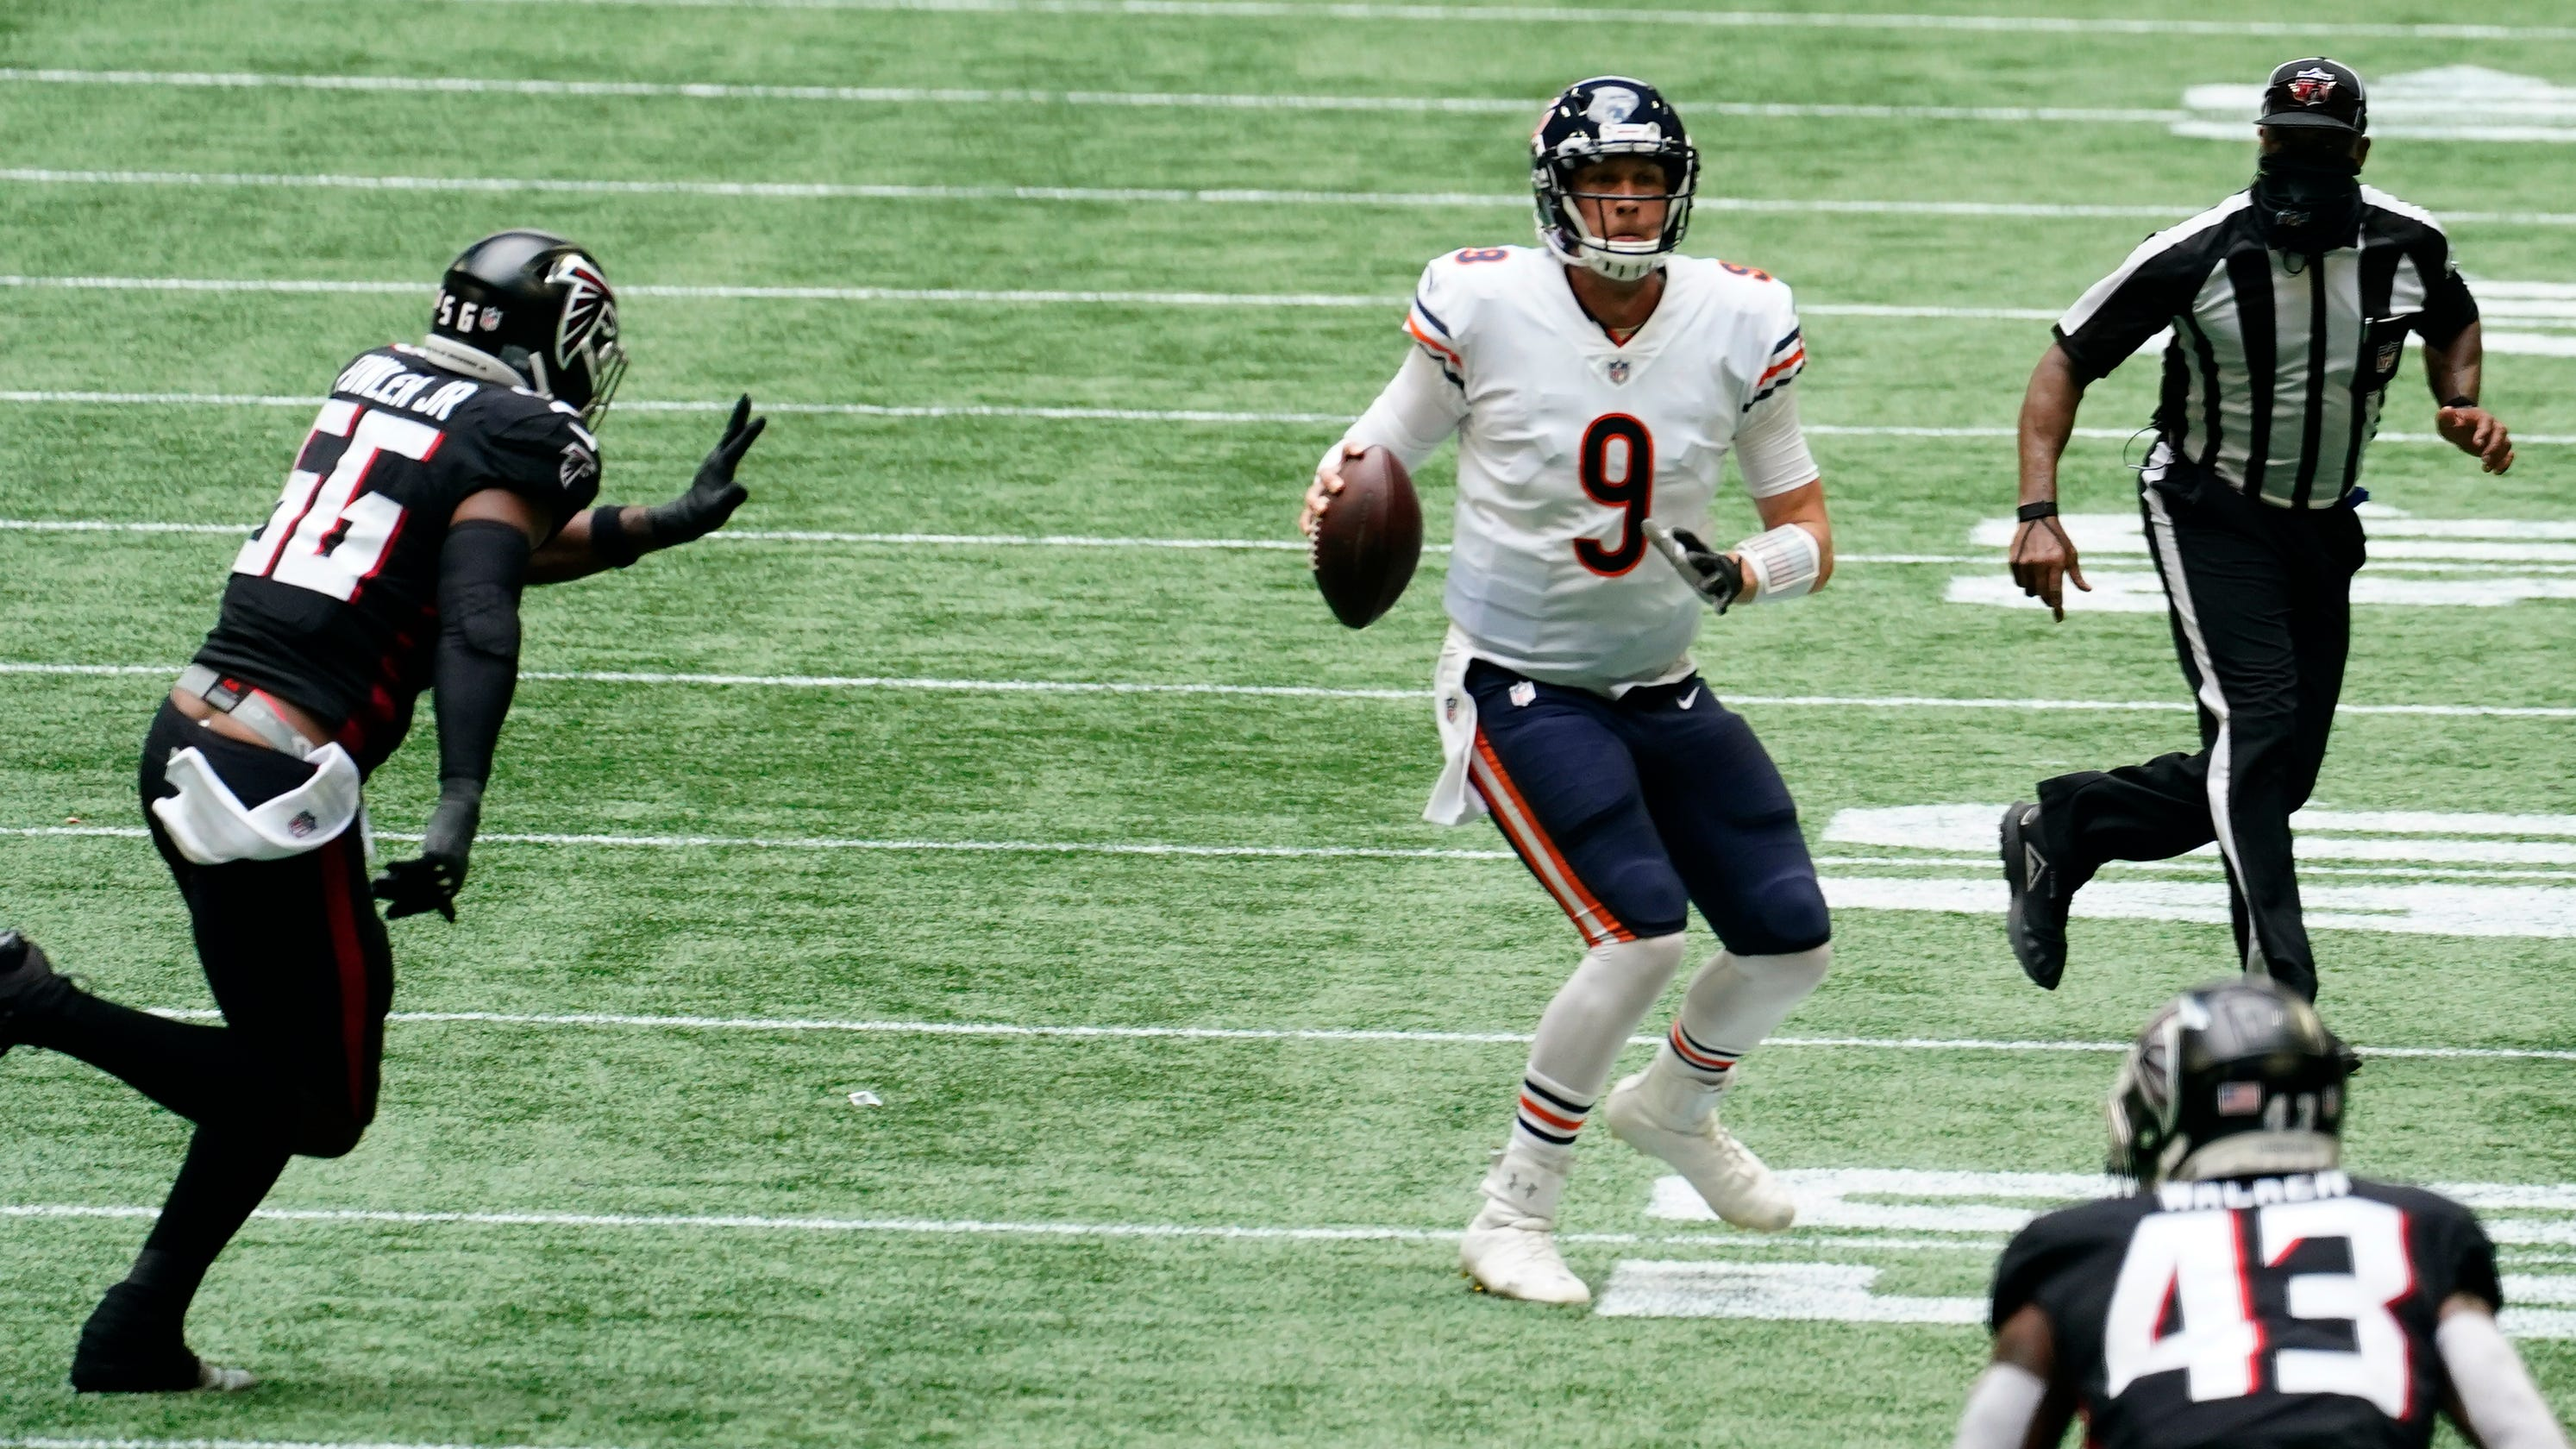 Nick Foles sparks Chicago Bears to fourth-quarter comeback as Atlanta Falcons collapse late again